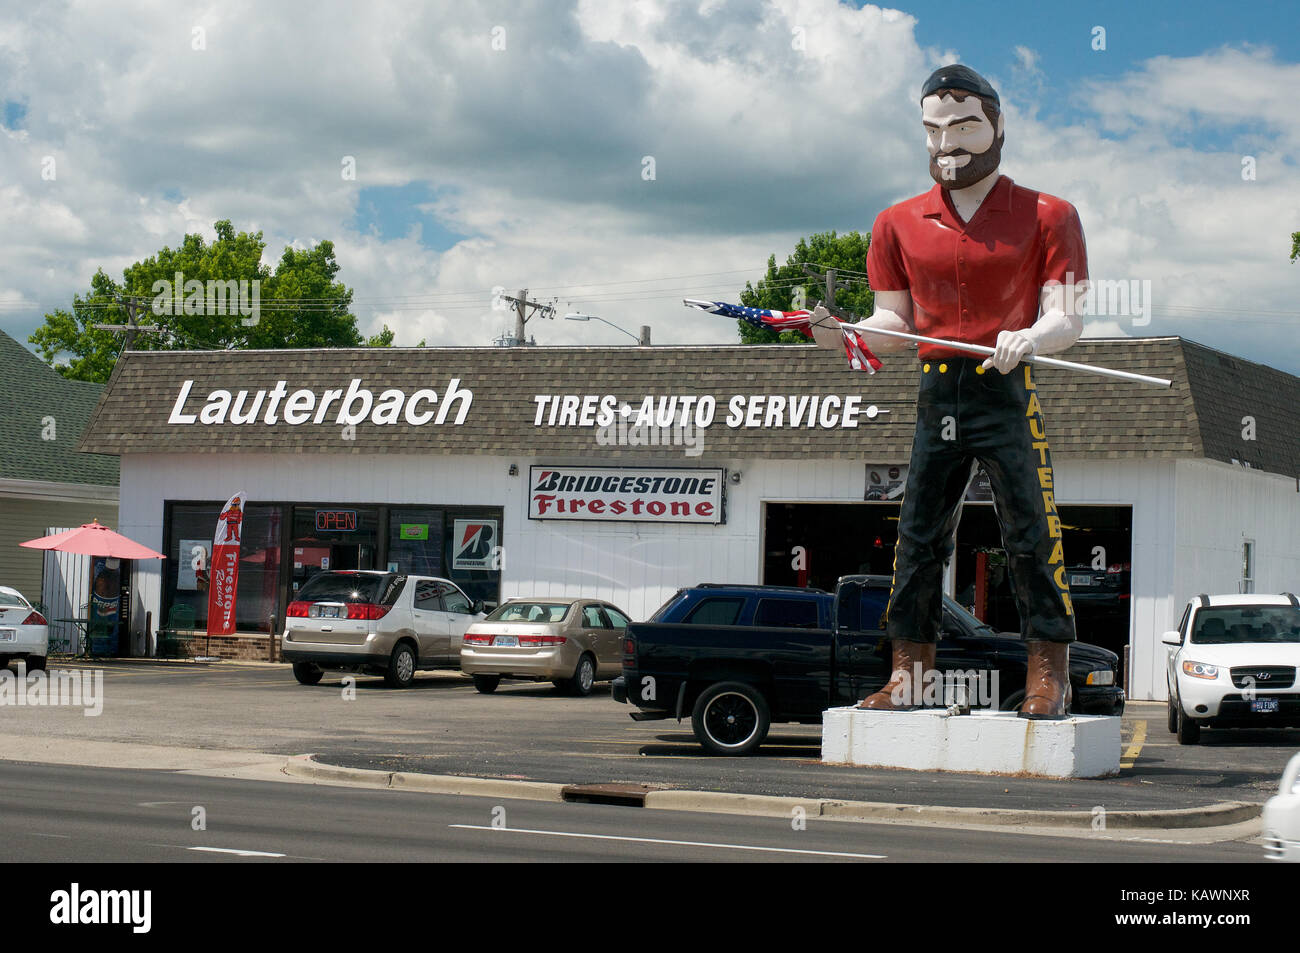 The Muffler Man Giant at Springfield, Illinois, USA - Stock Image